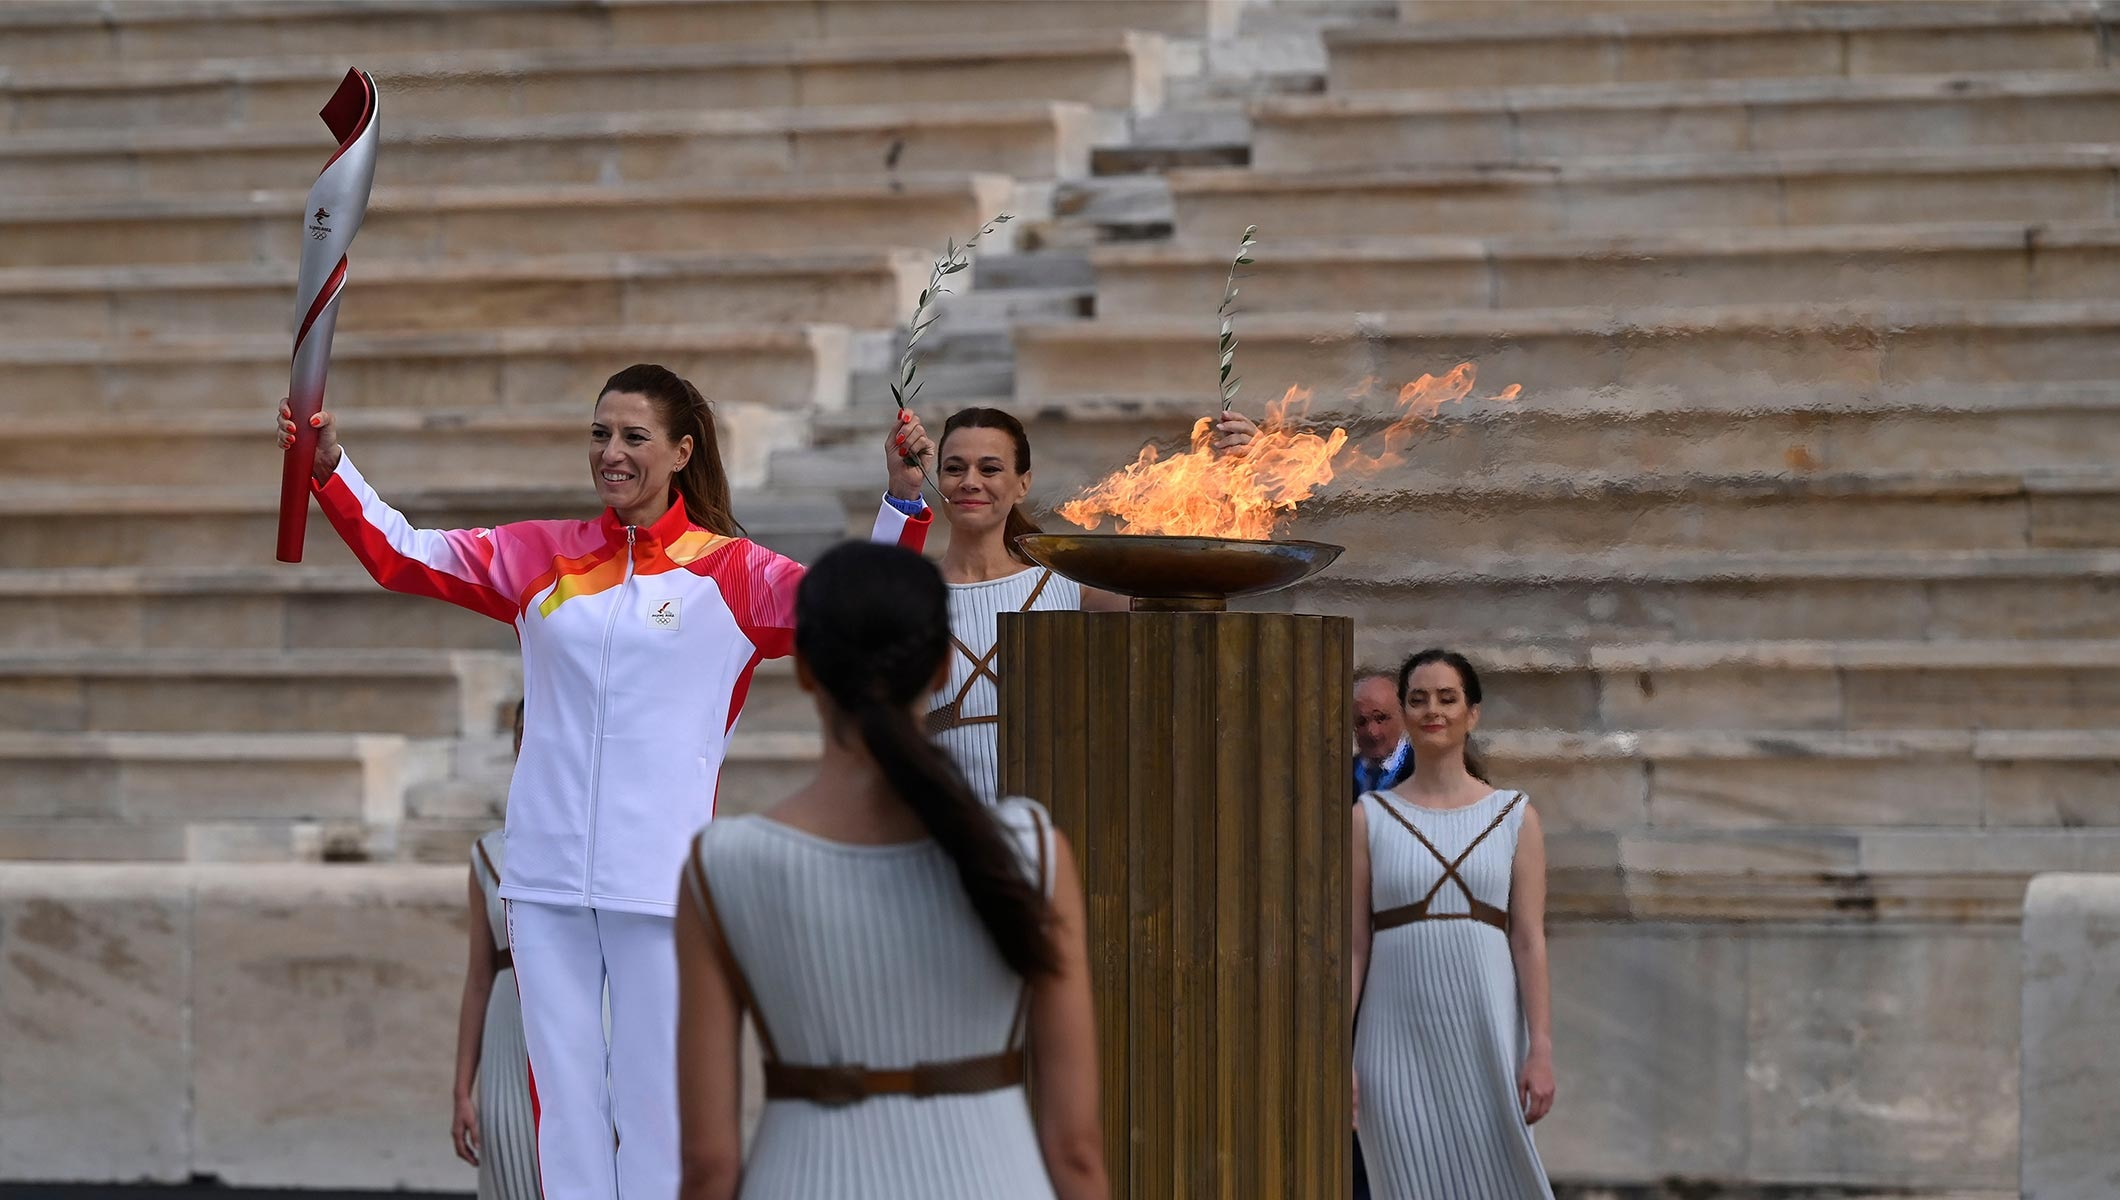 The Olympic flame for the Olympic Winter Games Beijing 2022